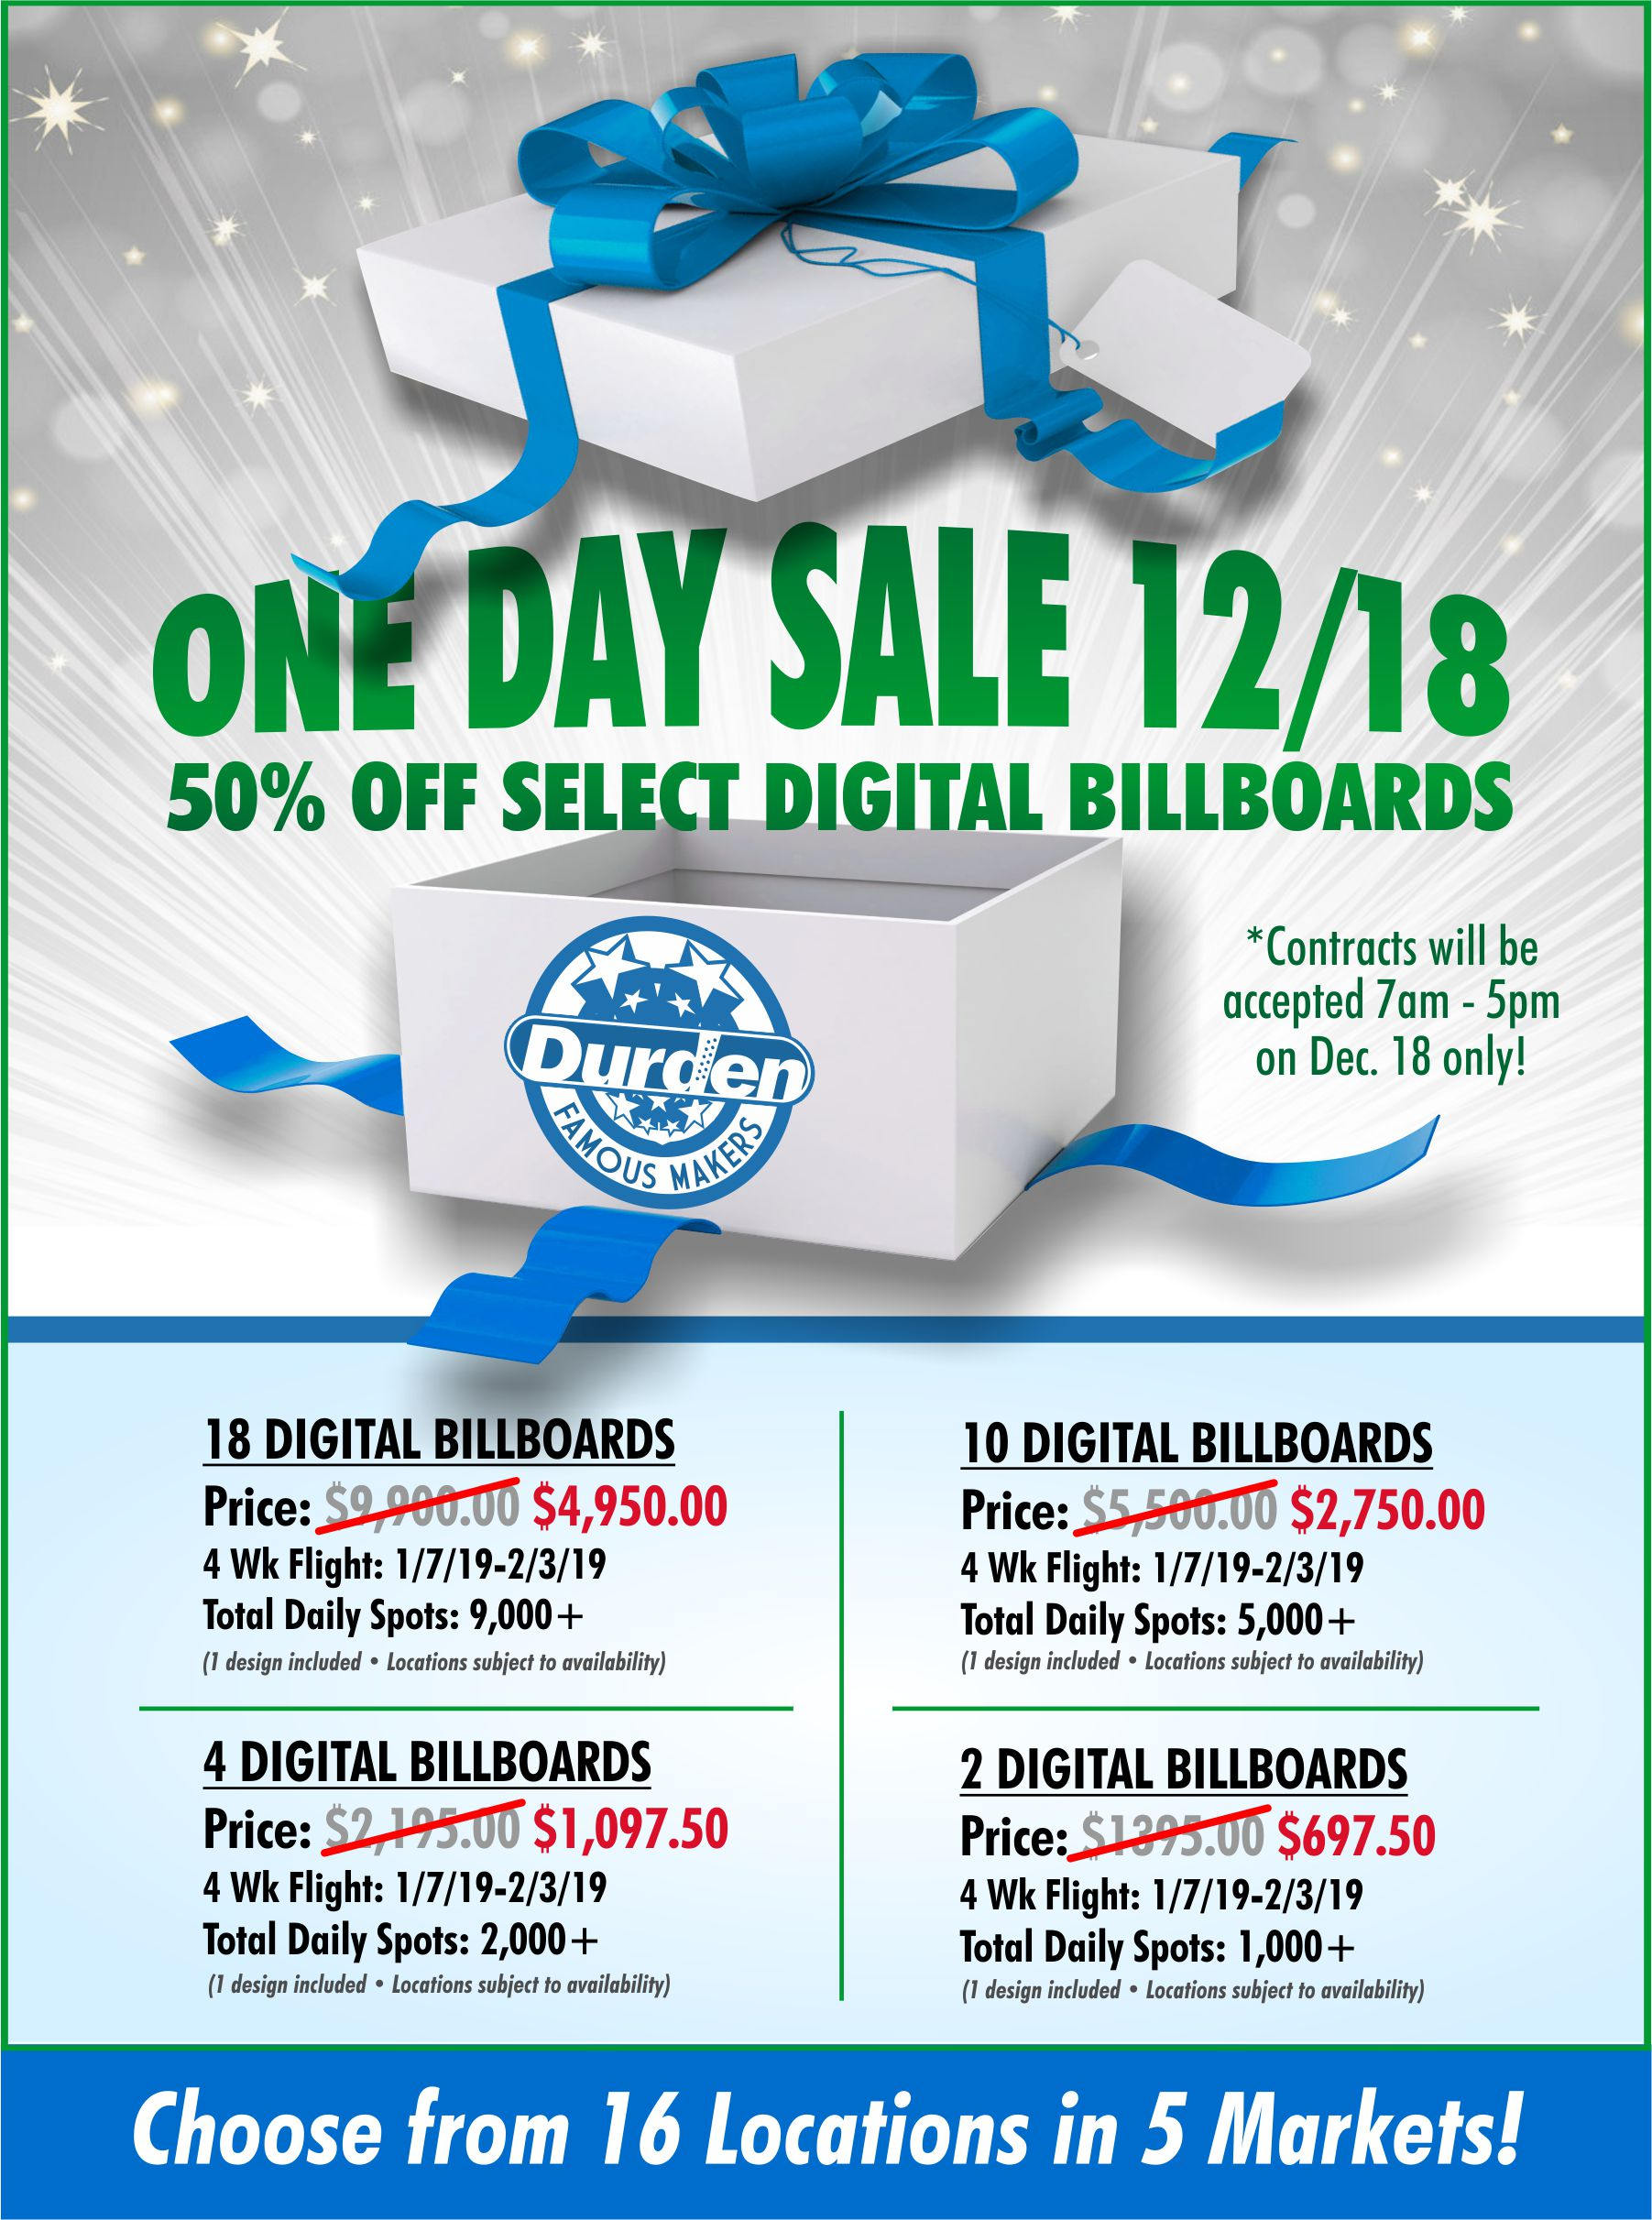 One Day Sale 12/18 50% Off Billboards